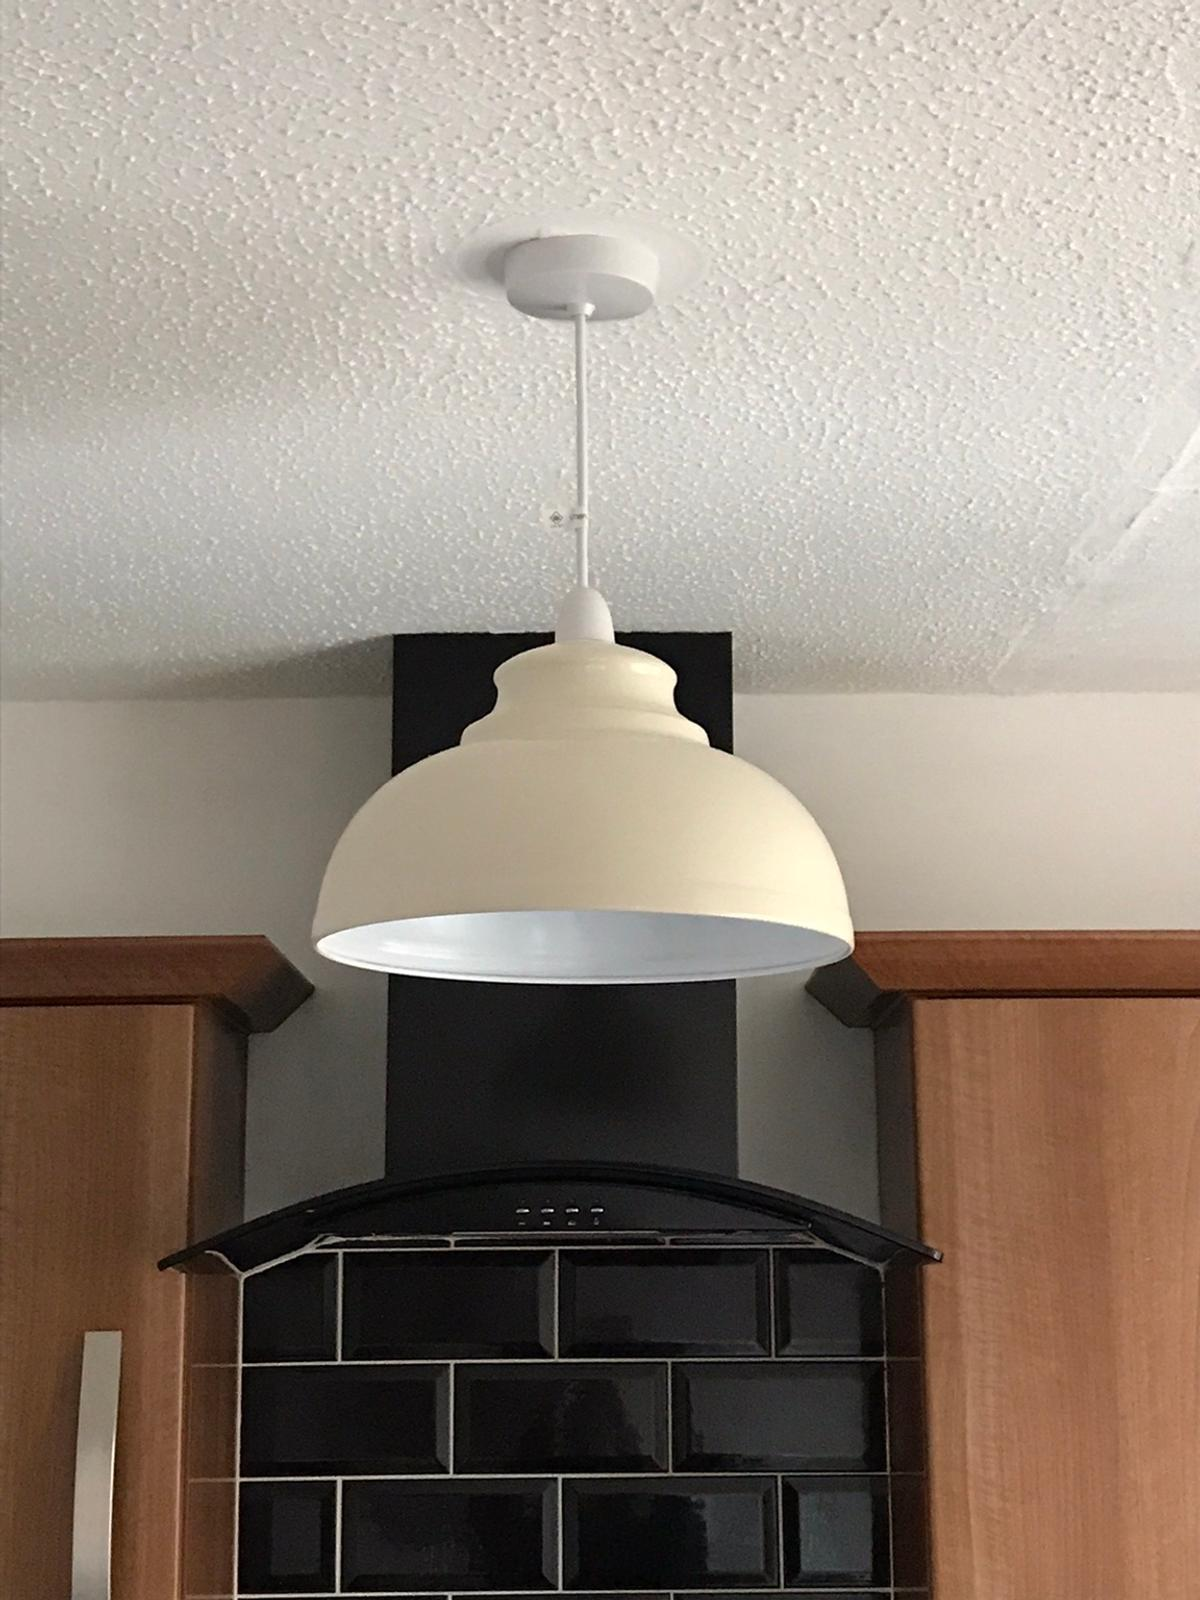 Cream metal lamp shades From the range originally £5 each They are currently still for sale in the shop and are £8.99 each.